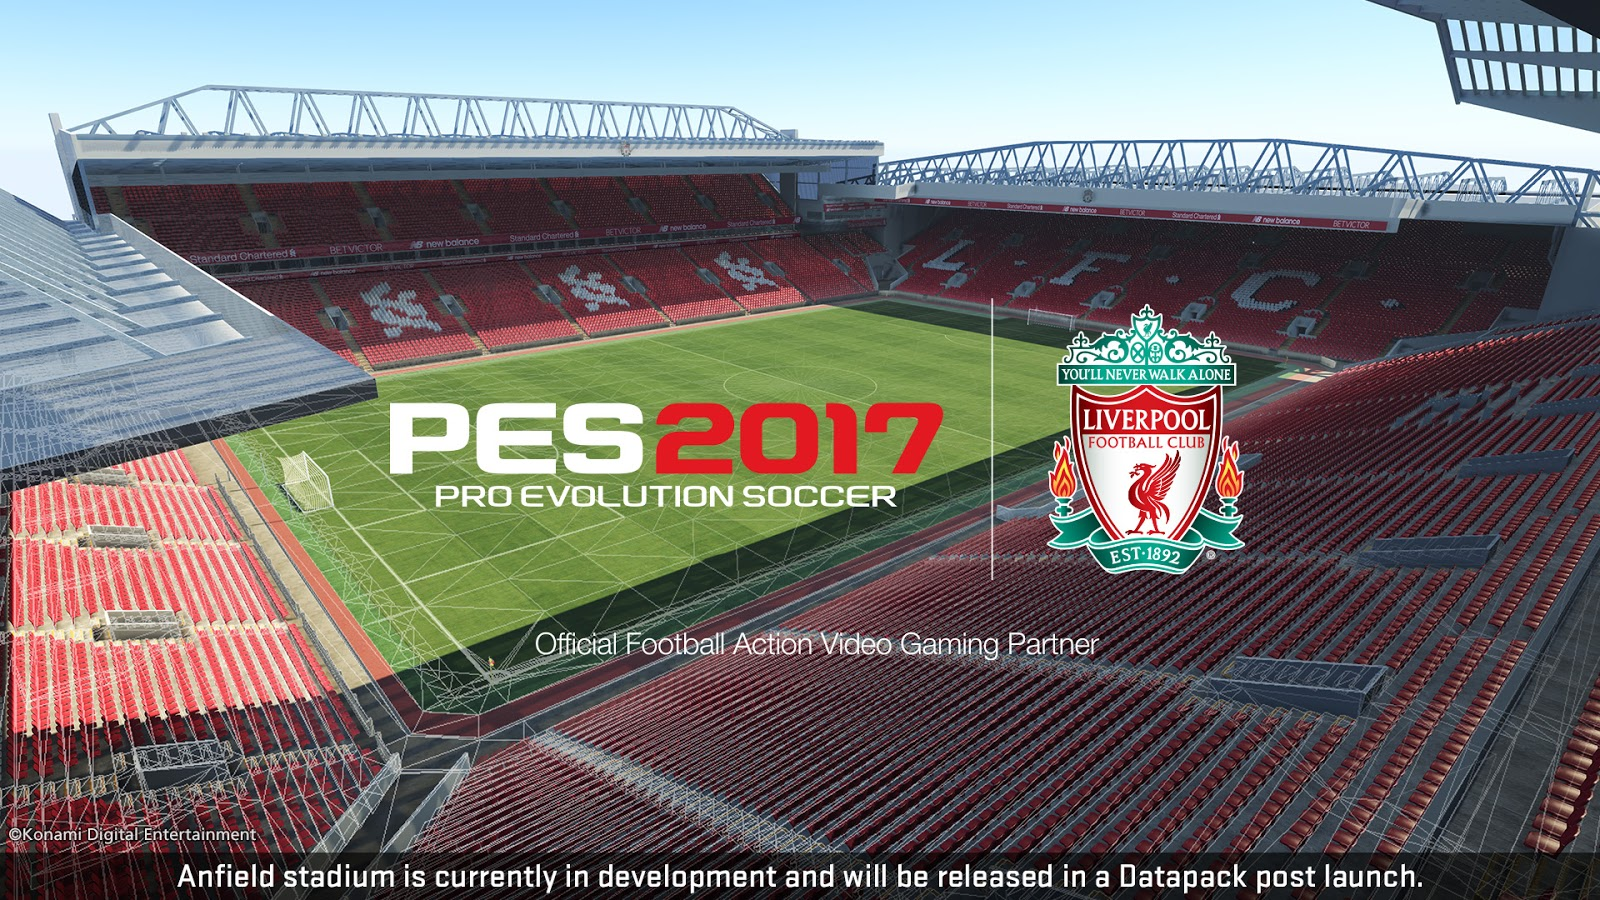 PES2017-LFC-Announcement-Anfield-03.jpg